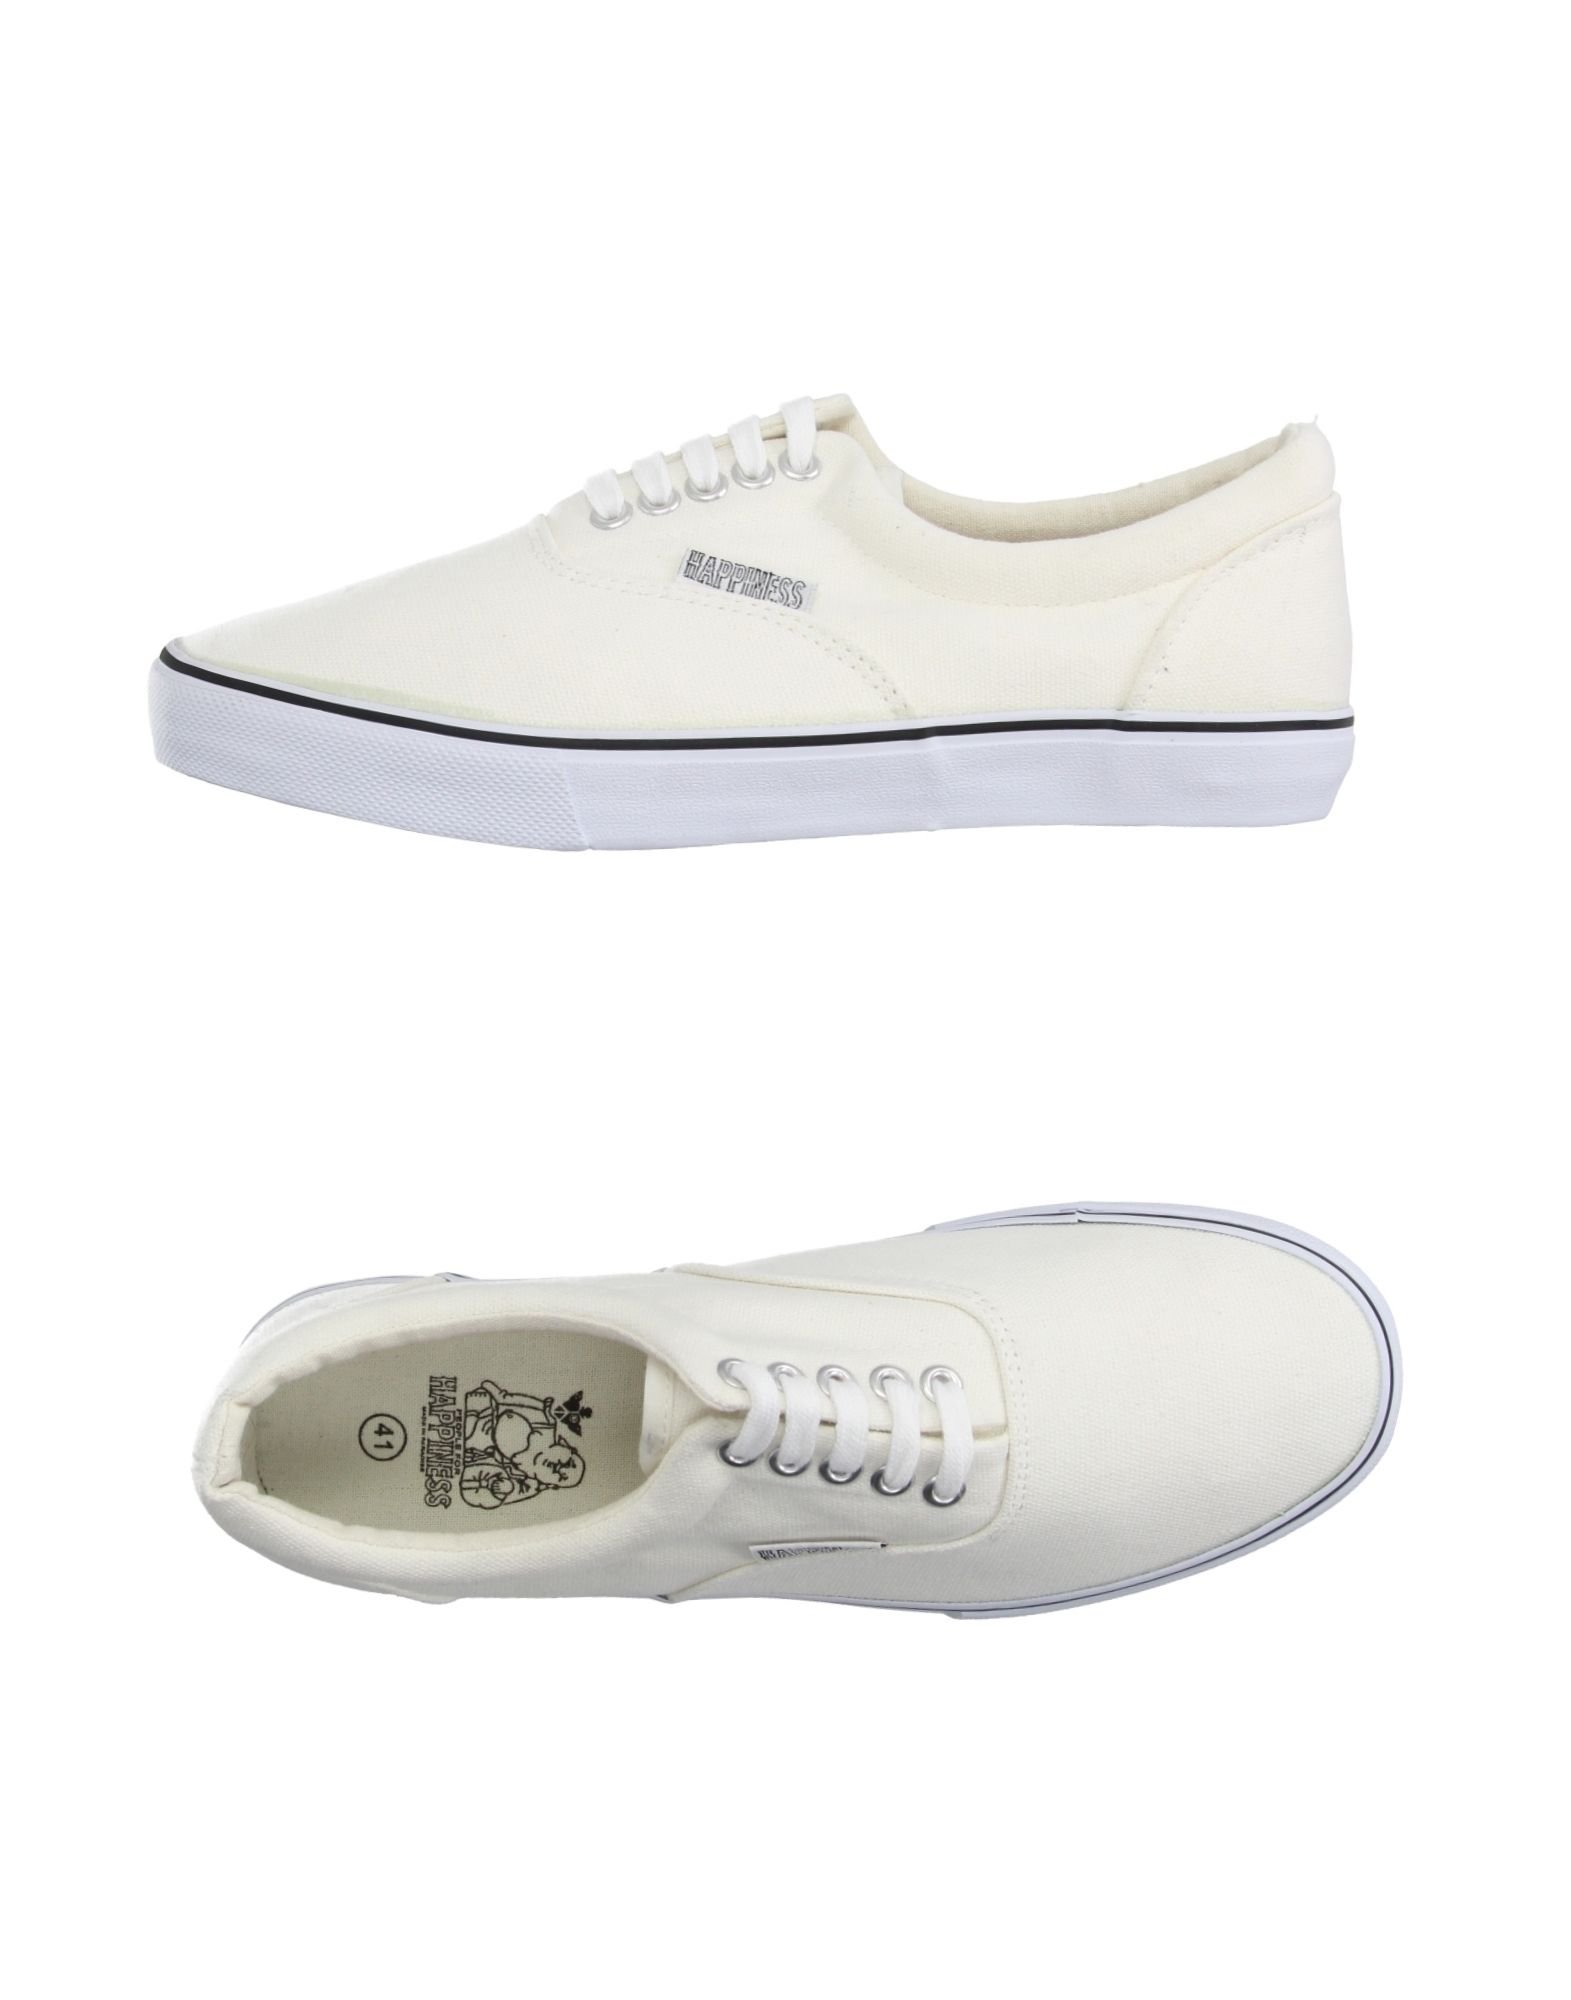 Sneakers Happiness Homme - Sneakers Happiness  Blanc Remise de marque